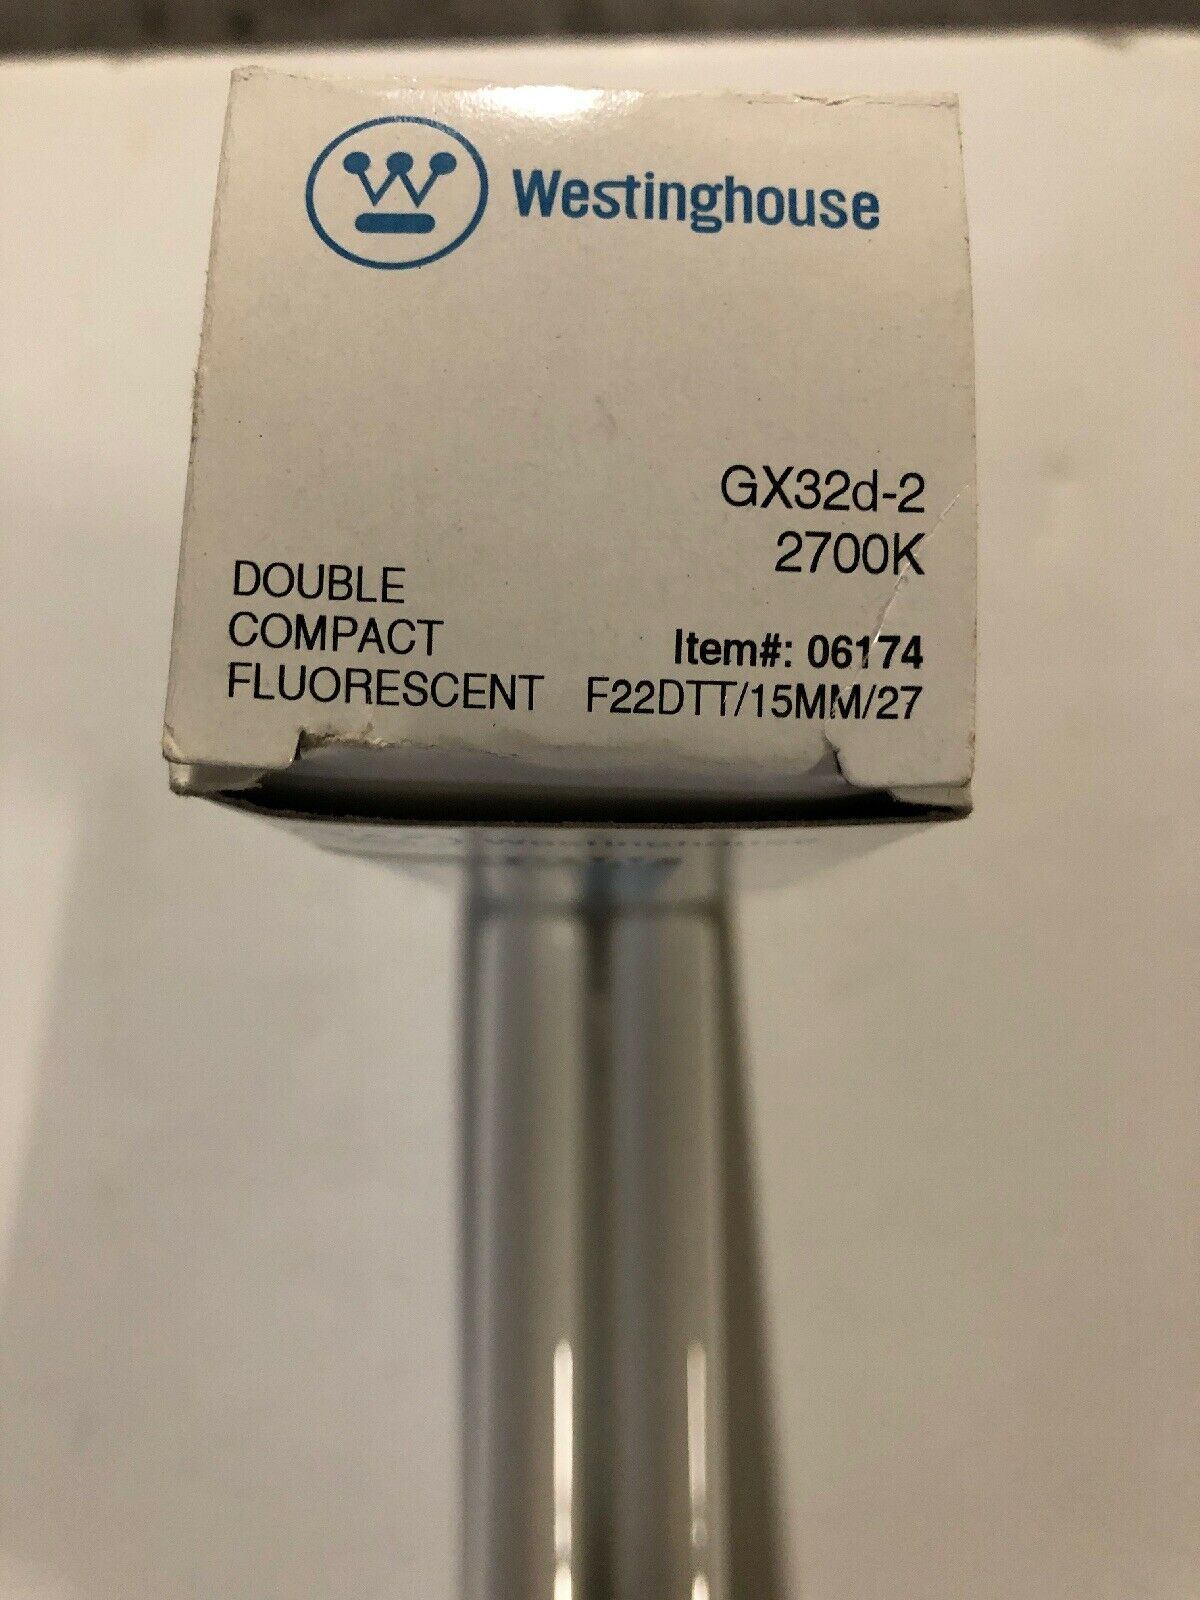 Replacement for Westinghouse 06175 Light Bulb This Bulb is Not Manufactured by Westinghouse